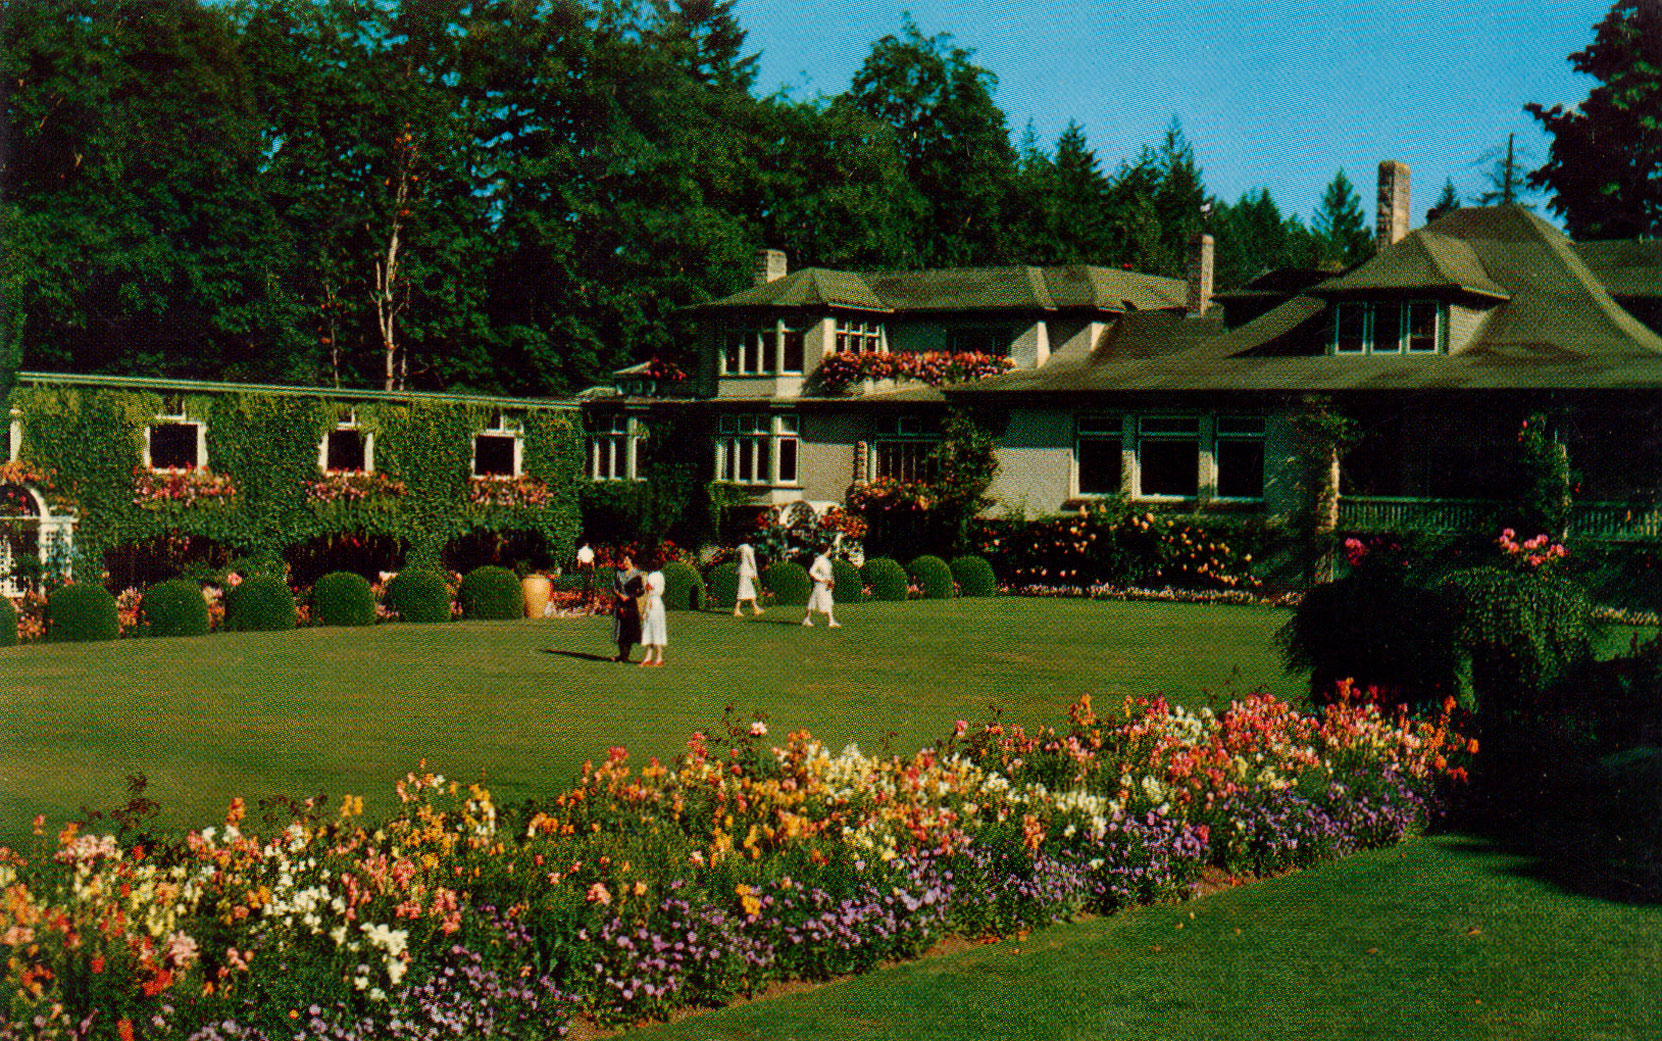 Postcard showing Benvenuto and the Italian Garden, circa 1950. This postcard was distributed by the Northern Pacific Railway. (Author's collection)